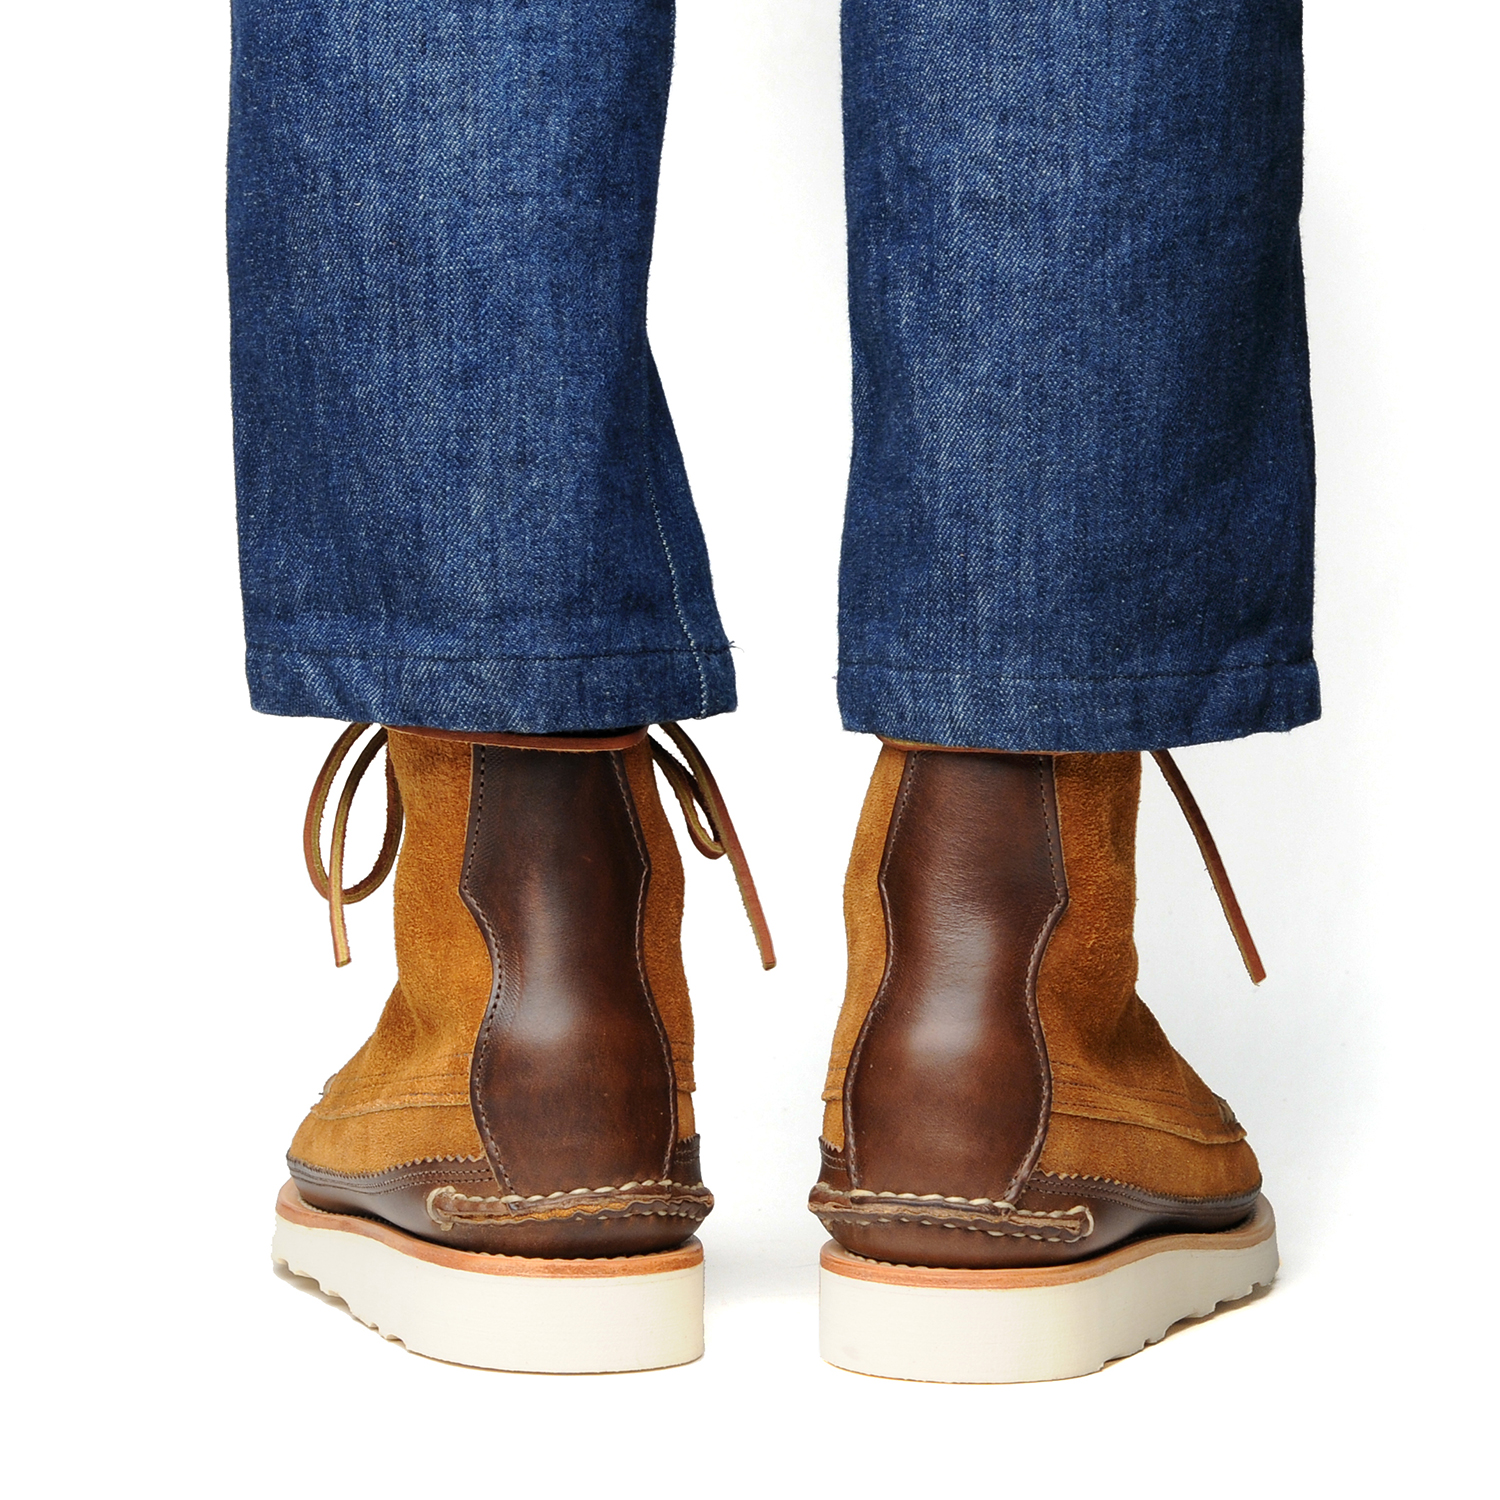 18005PM-Maine-Guide-DB-Boots,-FO-G-Brown,-Wear-Back.jpg